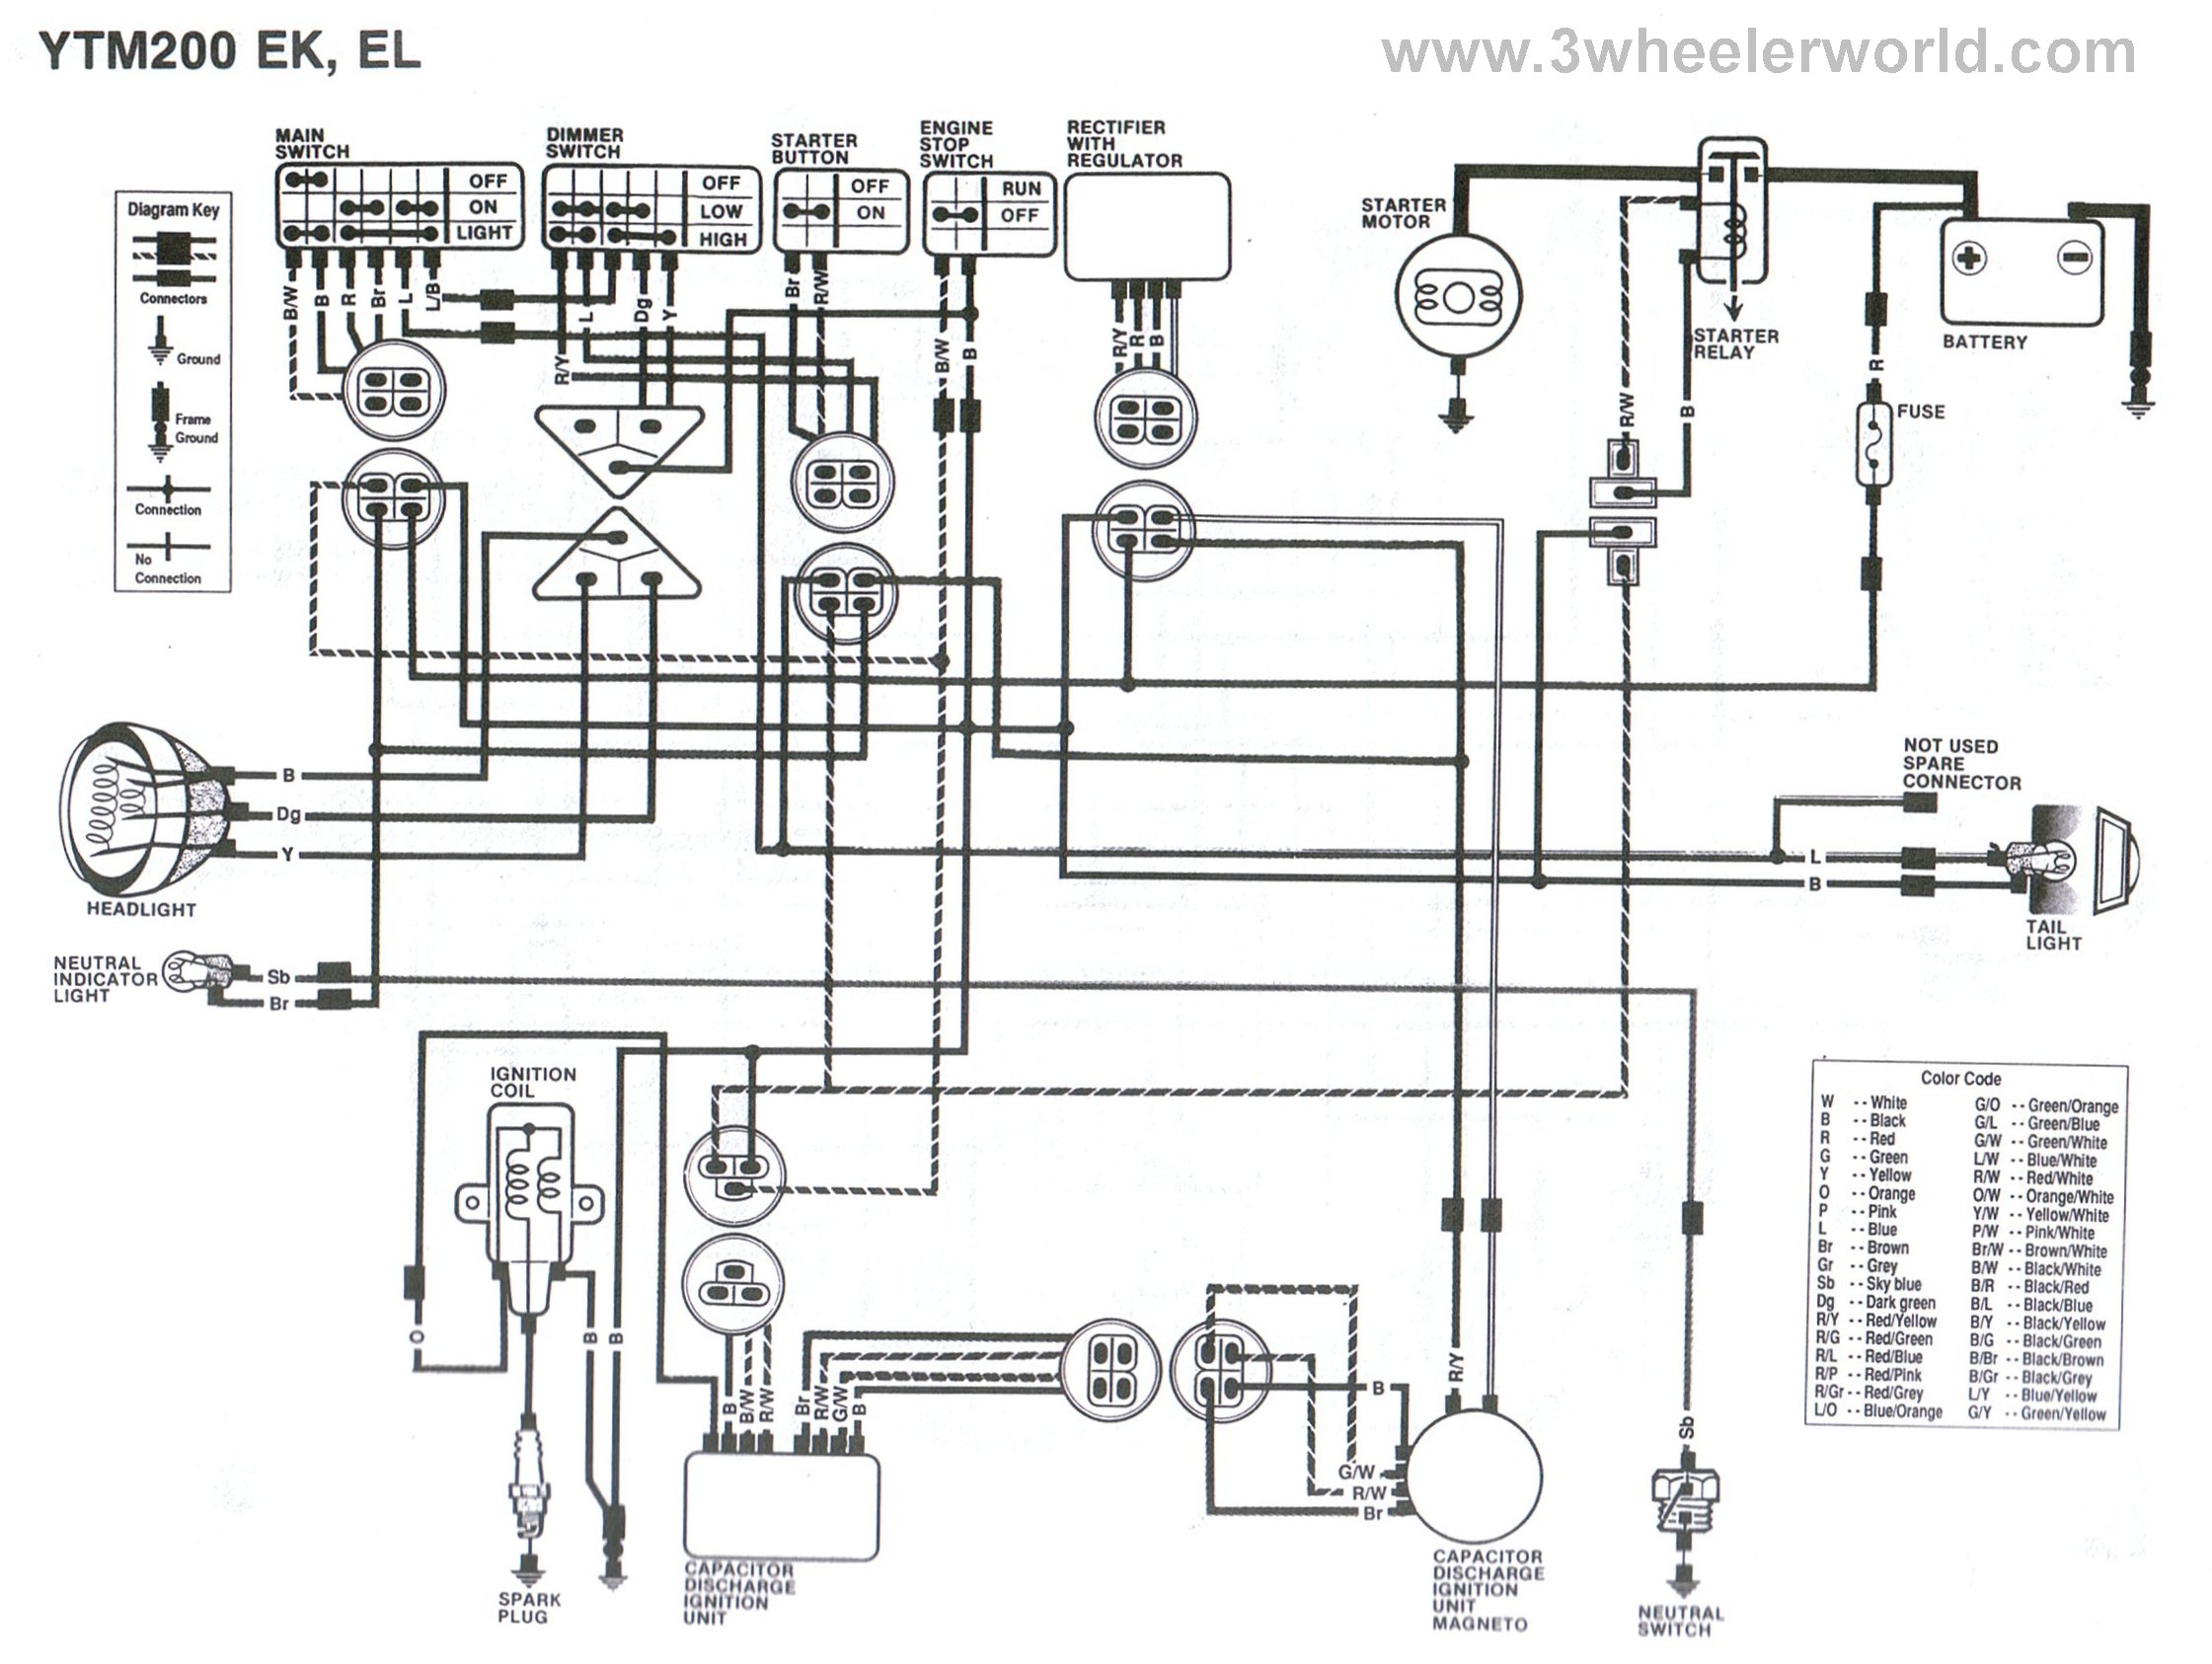 YTM200EKEL 3 wheeler world tech help yamaha wiring diagrams yamaha ttr 225 wiring diagram at honlapkeszites.co